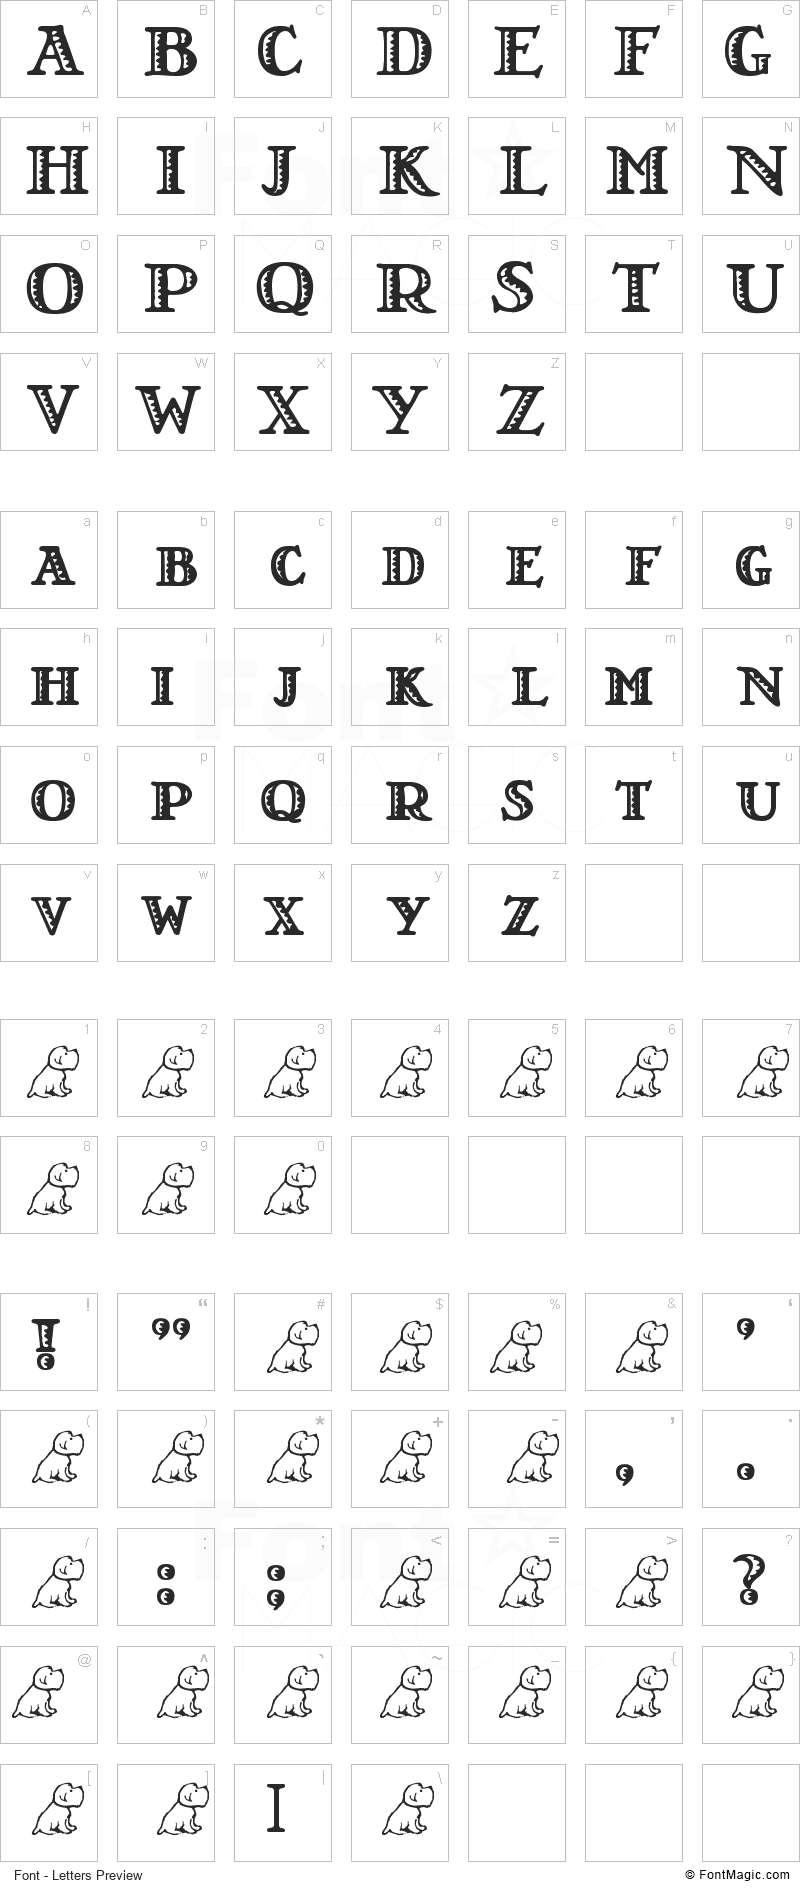 LT Nutshell Library Font - All Latters Preview Chart